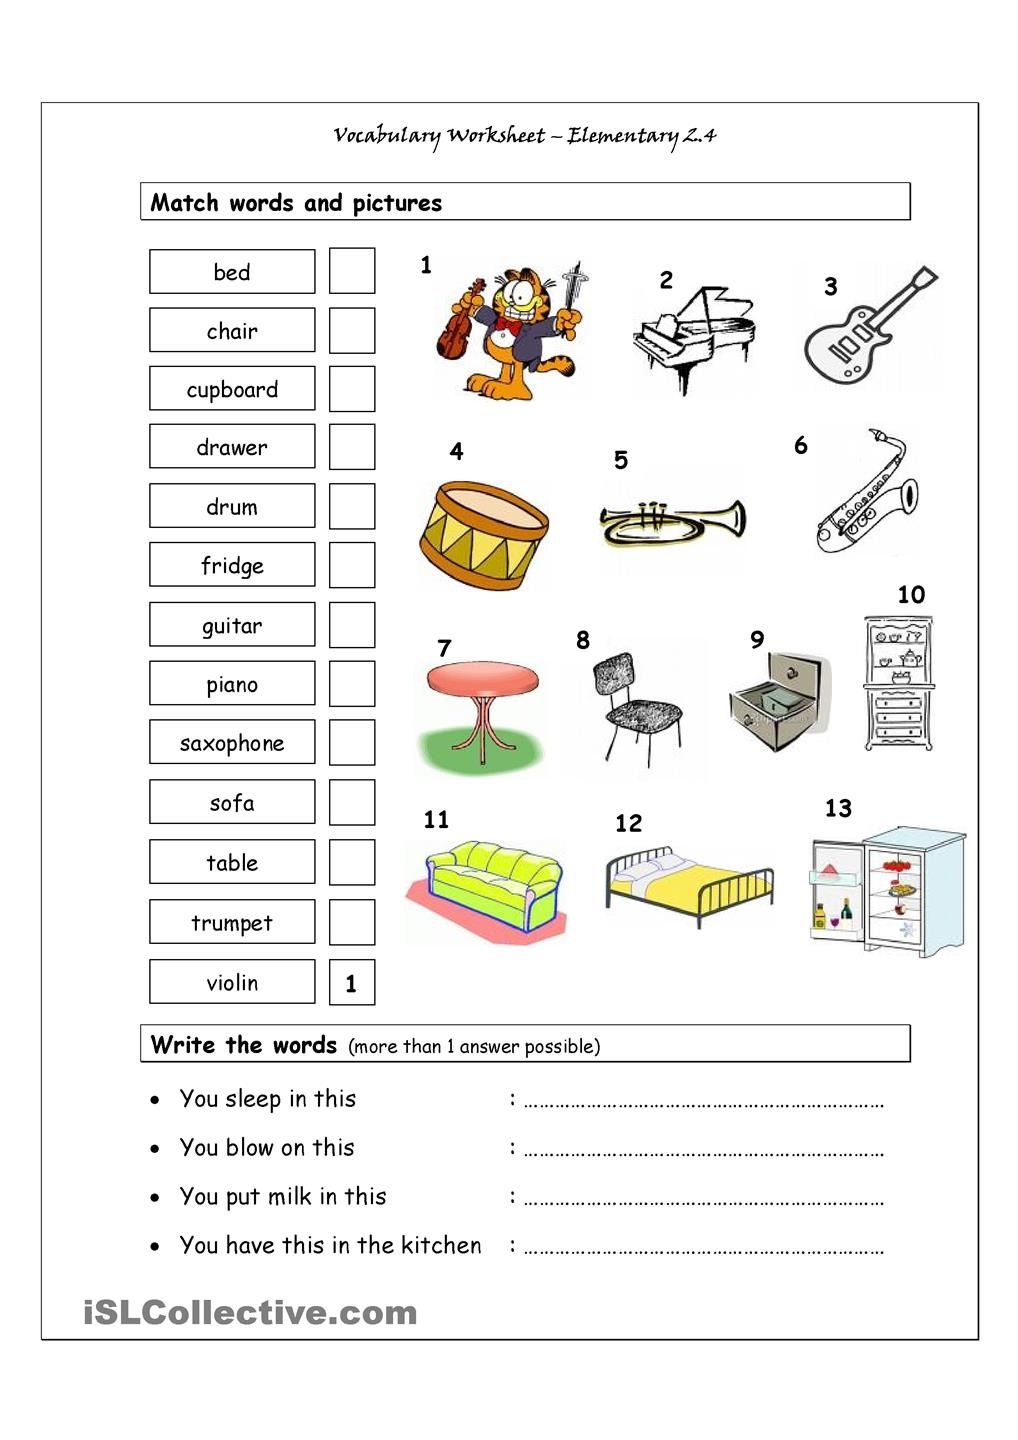 Worksheets Esl Vocabulary Worksheets vocabulary matching worksheet elementary 2 4 musical containing instruments house words it has two sections match and pictures exercise wr